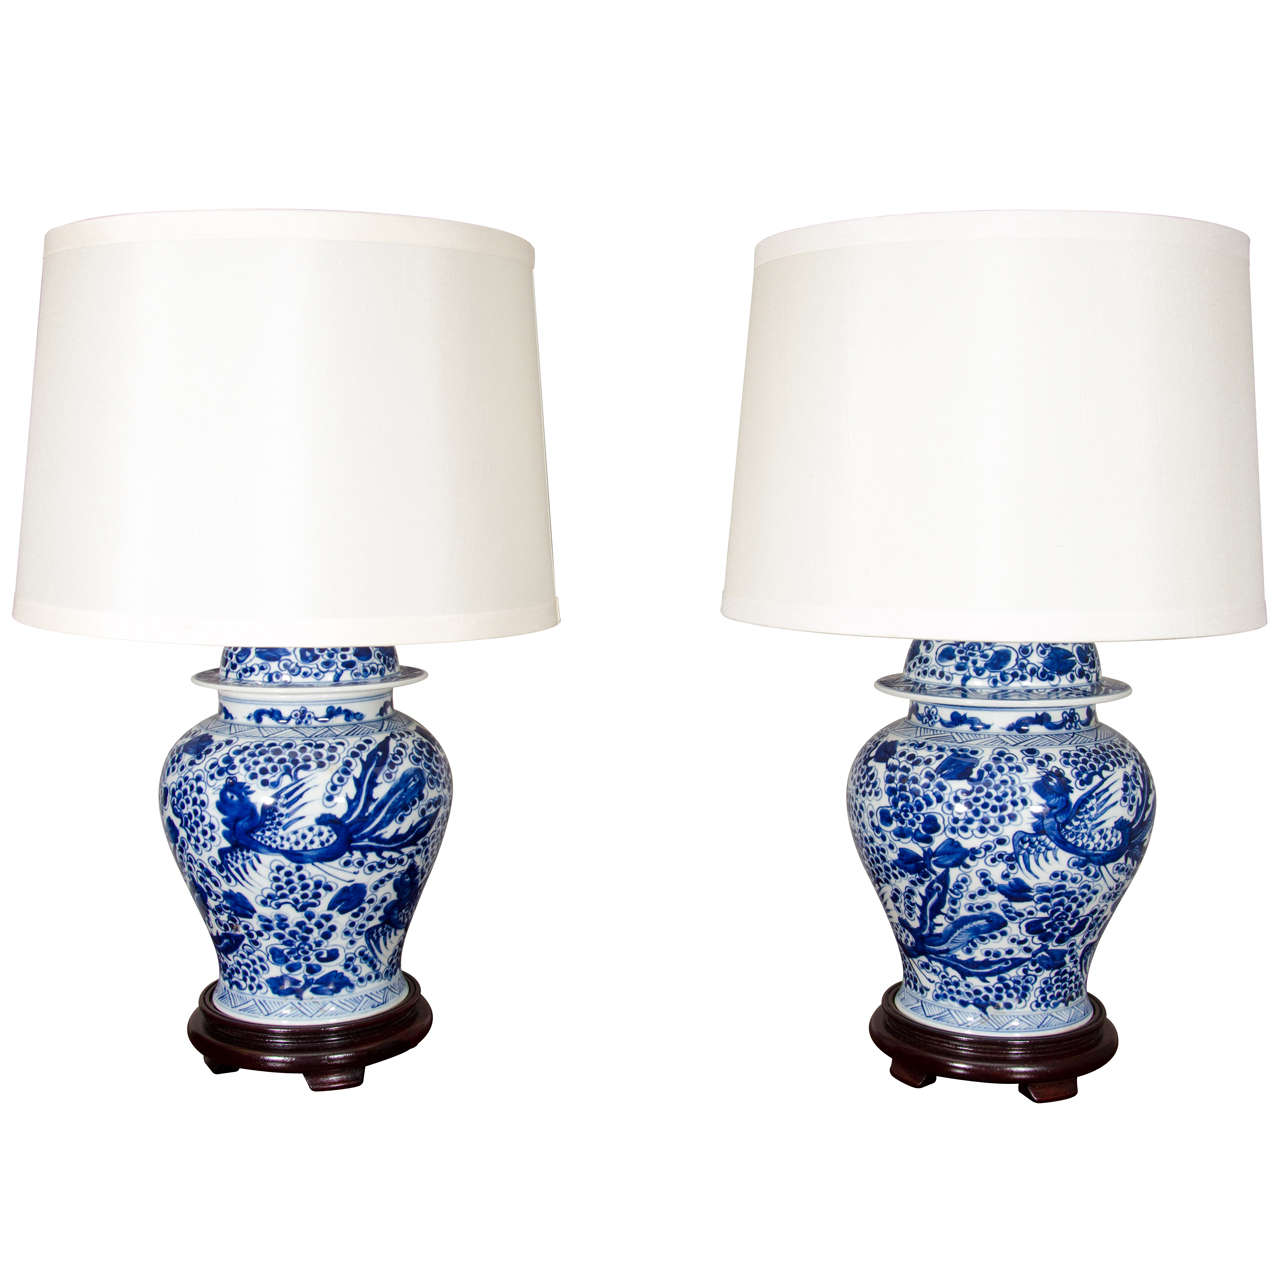 Pair of blue and white chinese temple jar lamps at 1stdibs pair of blue and white chinese temple jar lamps 1 geotapseo Gallery